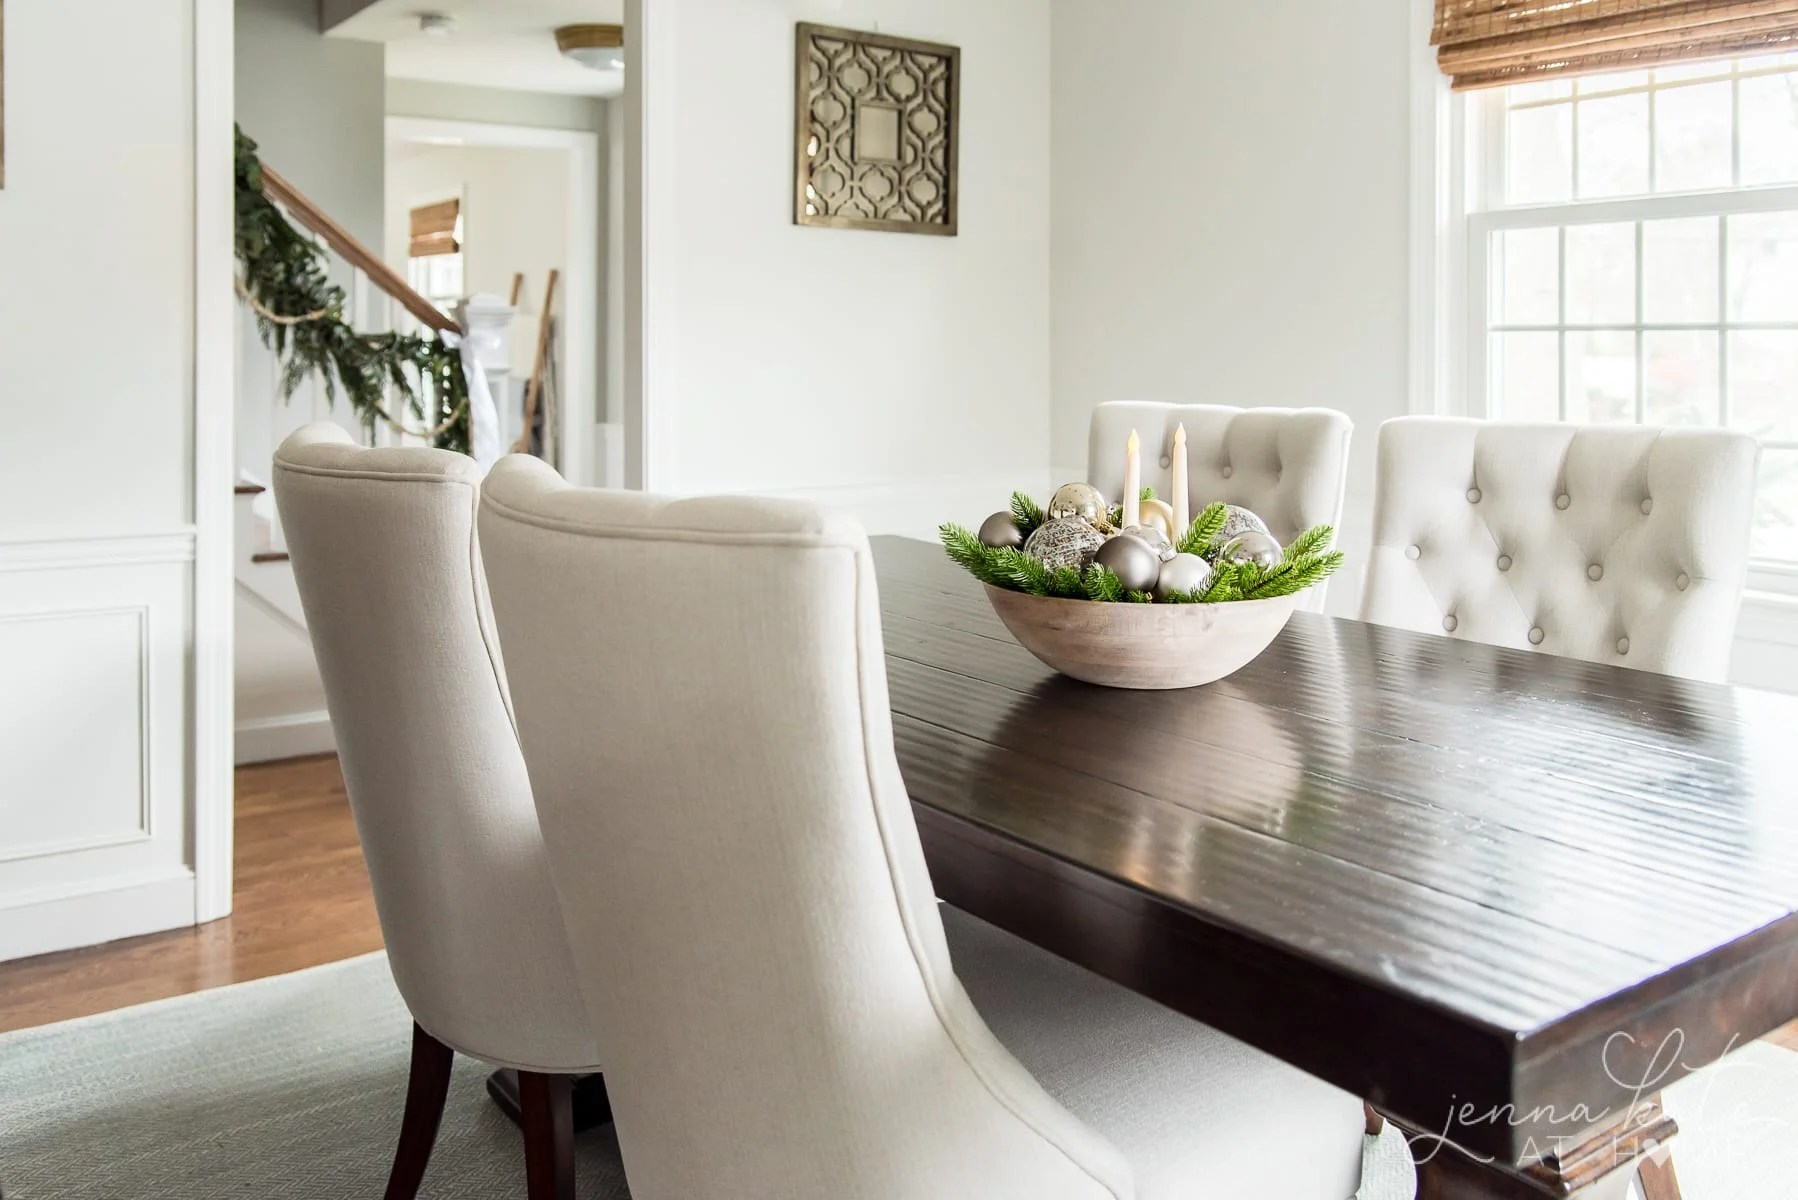 A living room filled with furniture and Christmas centerpiece on a table